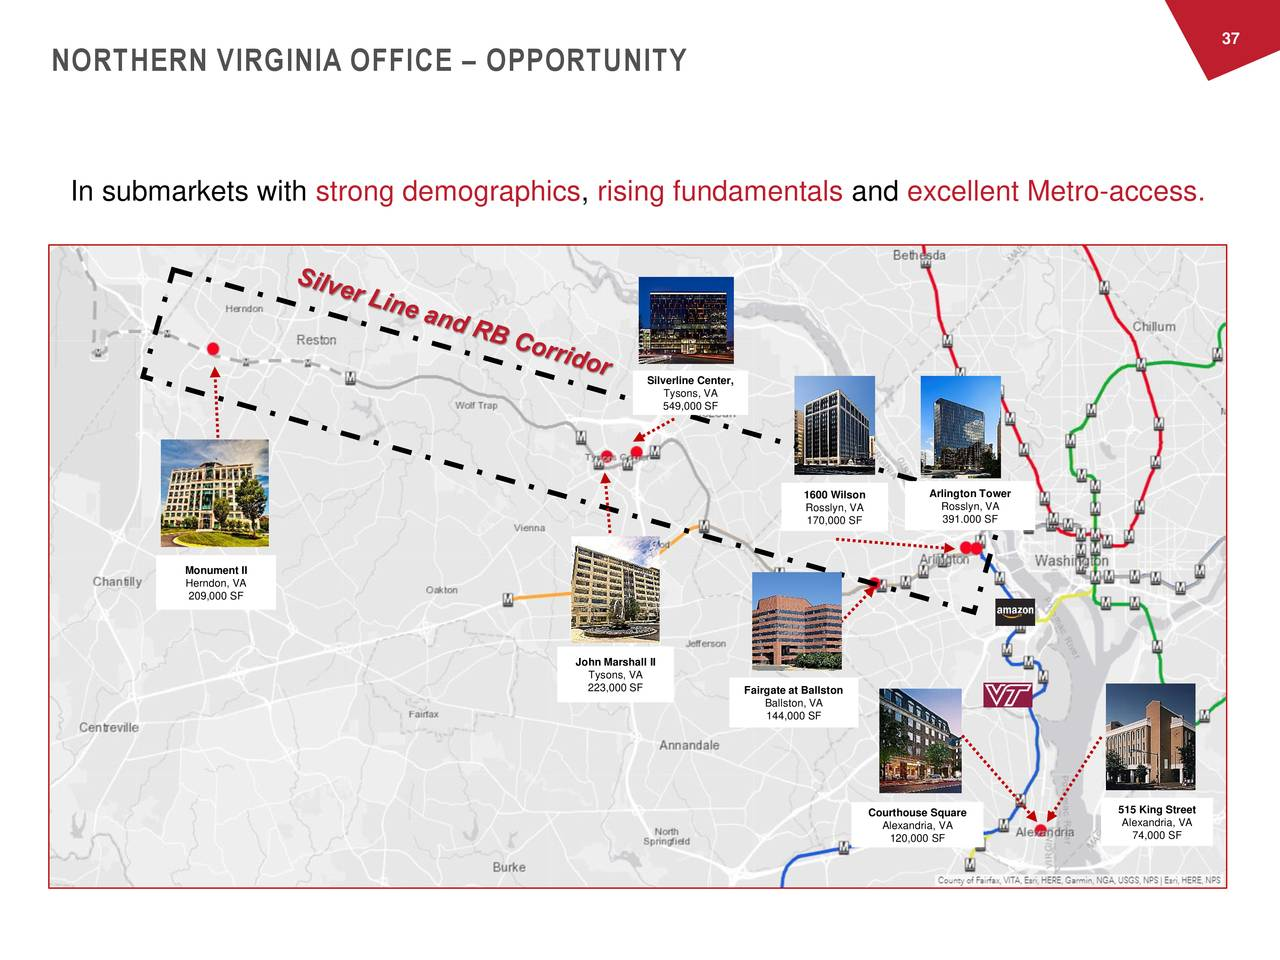 NORTHERN VIRGINIA OFFICE – OPPORTUNITY In submarkets with strong demographics, rising fundamentals and excellent Metro-access. Silverline Center, Tysons, VA 549,000 SF 1600 Wilson Arlington Tower Rosslyn, VA Rosslyn, VA 391.000 SF 170,000 SF Monument II Herndon, VA 209,000 SF John Marshall II Tysons, VA 223,000 SF Fairgate at Ballston Ballston, VA 144,000 SF Courthouse Square 515 King Street Alexandria, VA Alexandria, VA 120,000 SF 74,000 SF